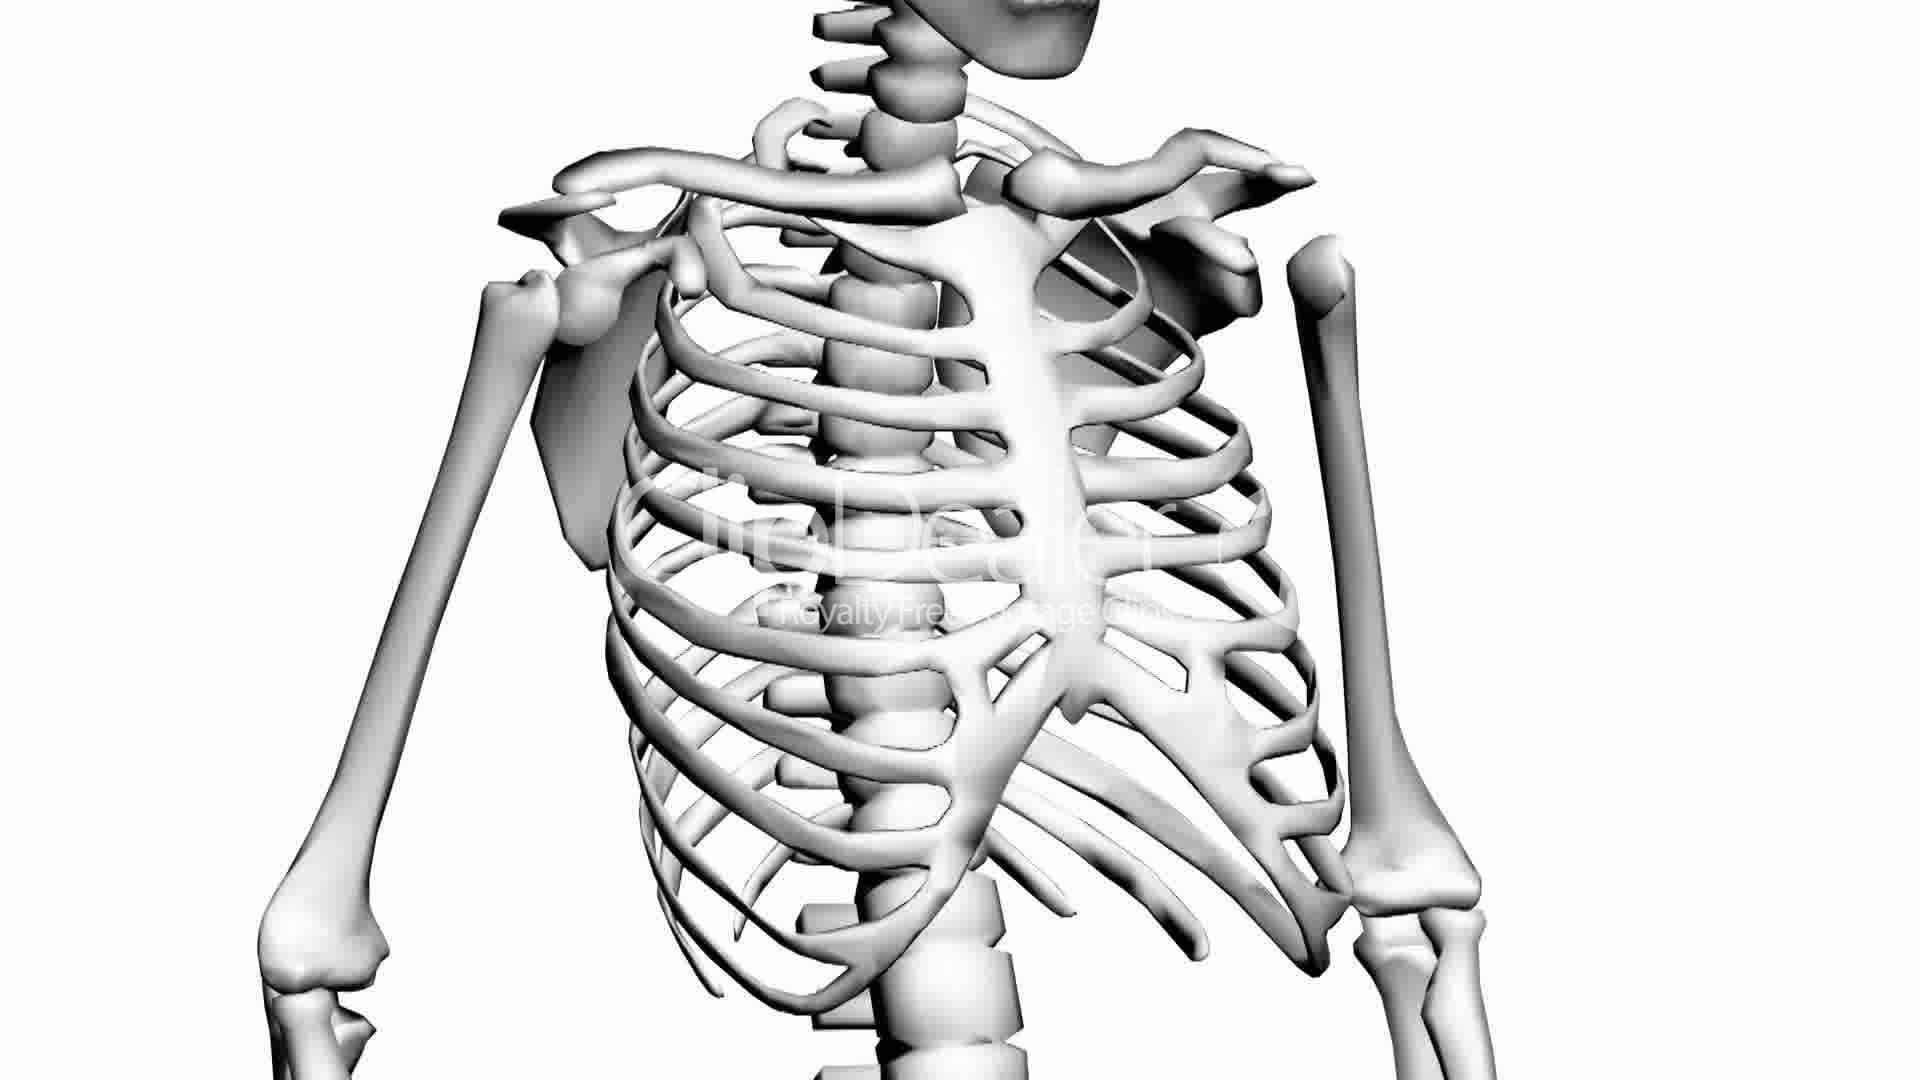 Rotation Of 3d Skeleton Ribs Chest Anatomy Human Medical Body Skull Biology Medicine Science